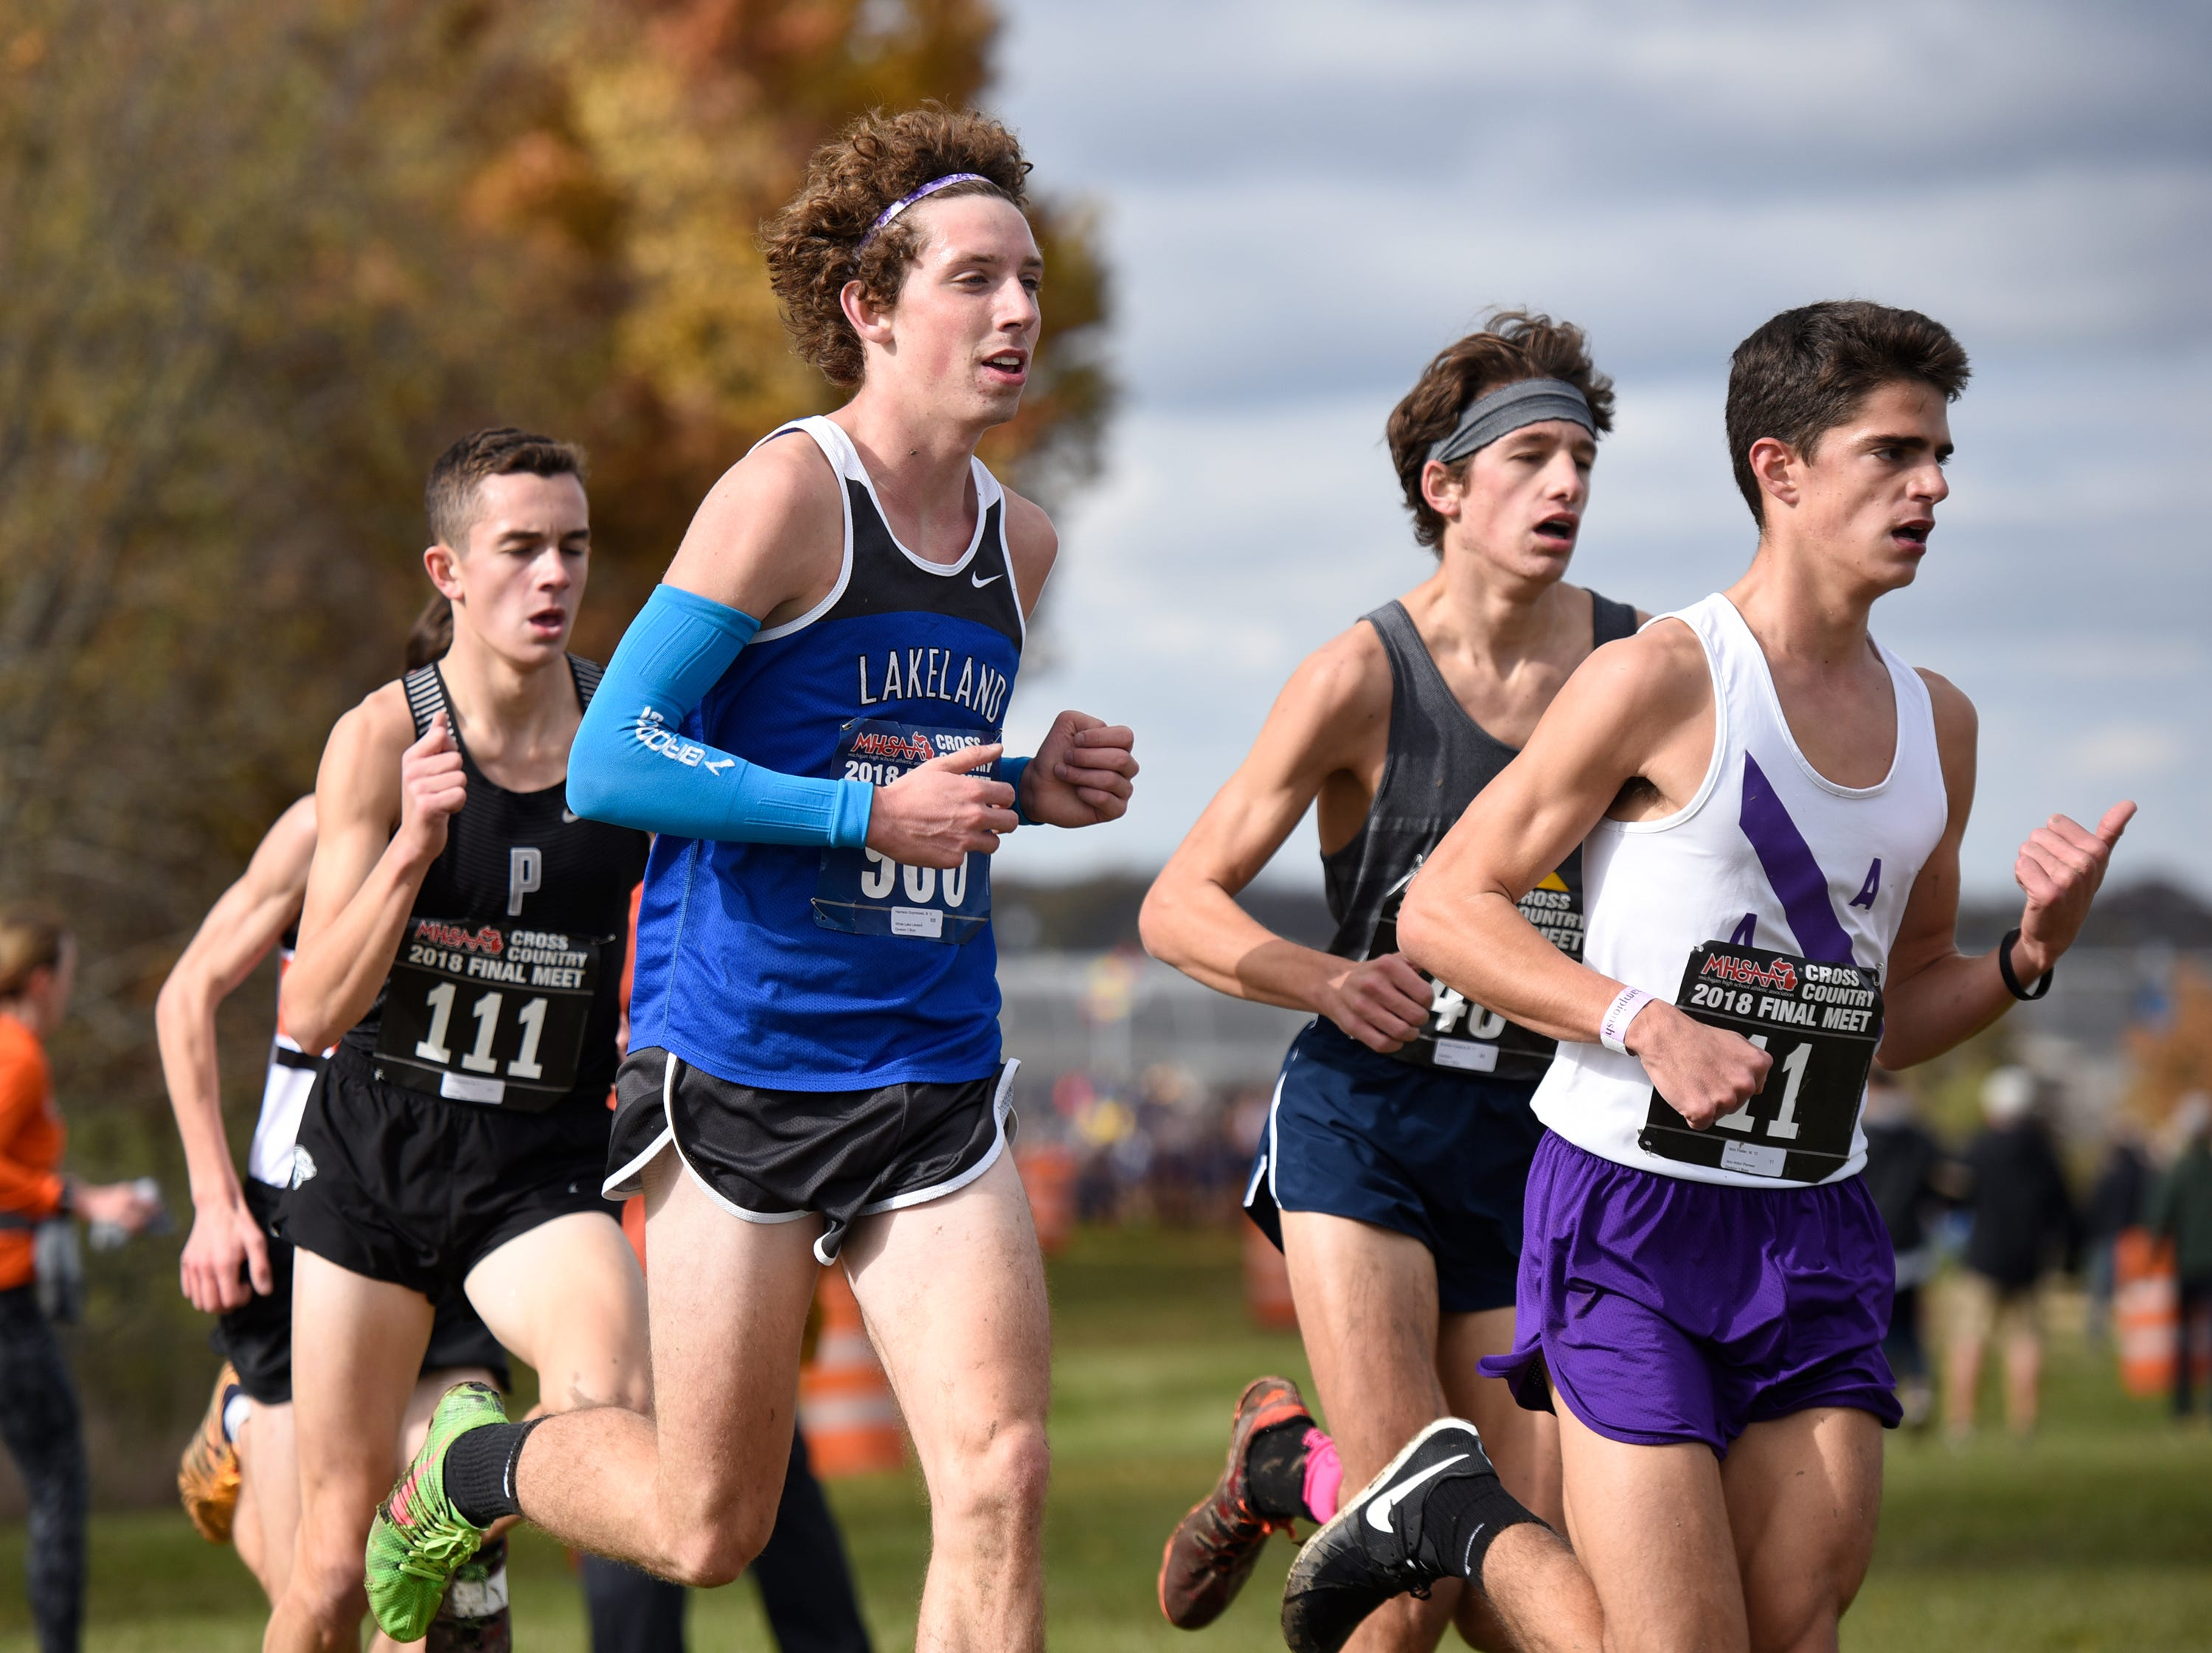 Lakeland's Harrison Grzymkowski in the lead pack during the Division 1 2018 cross country finals at Michigan International Speedway.